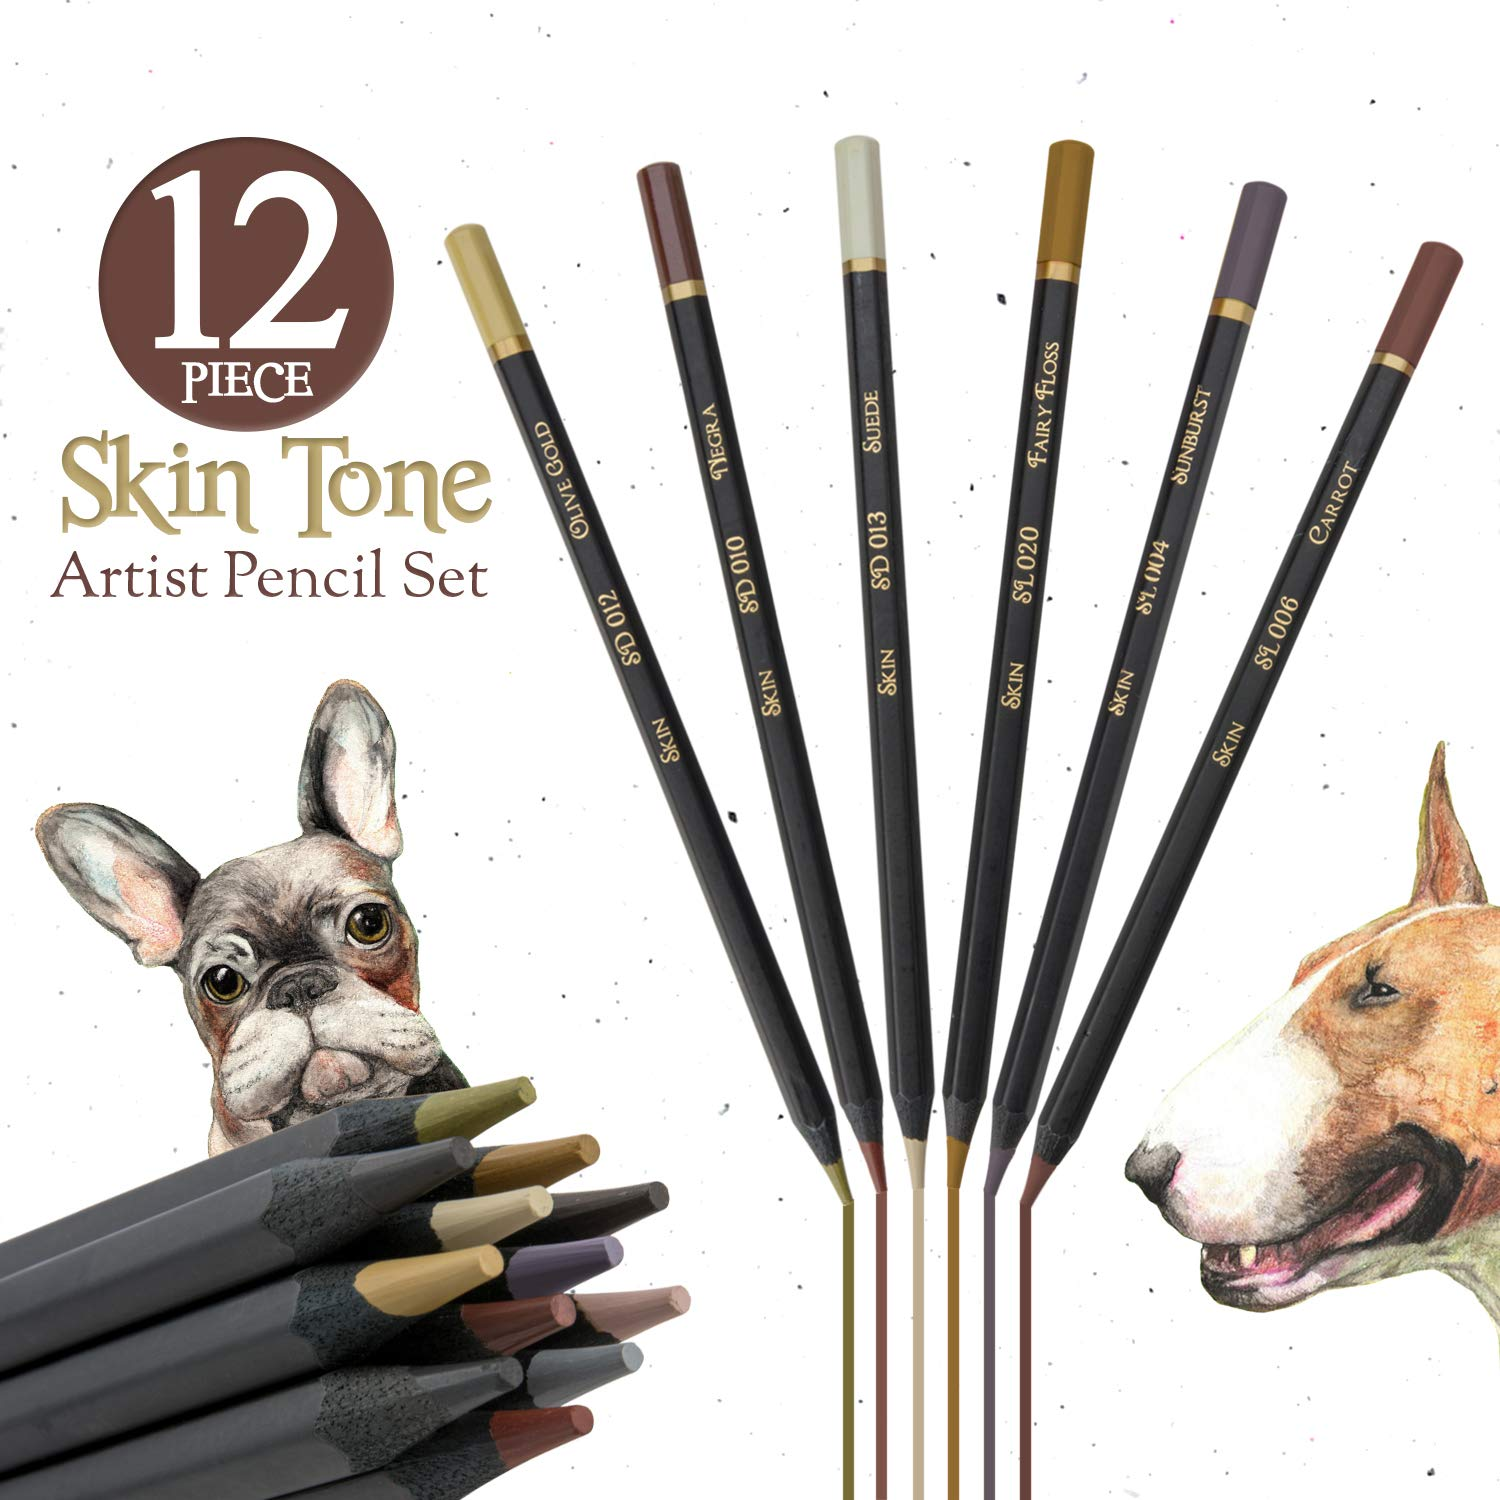 Dark Skin Tone Color Pencils for Portrait Set - Colored Pencils for Adults and Skintone Artist Pencils by Medihealth 1 (Image #8)